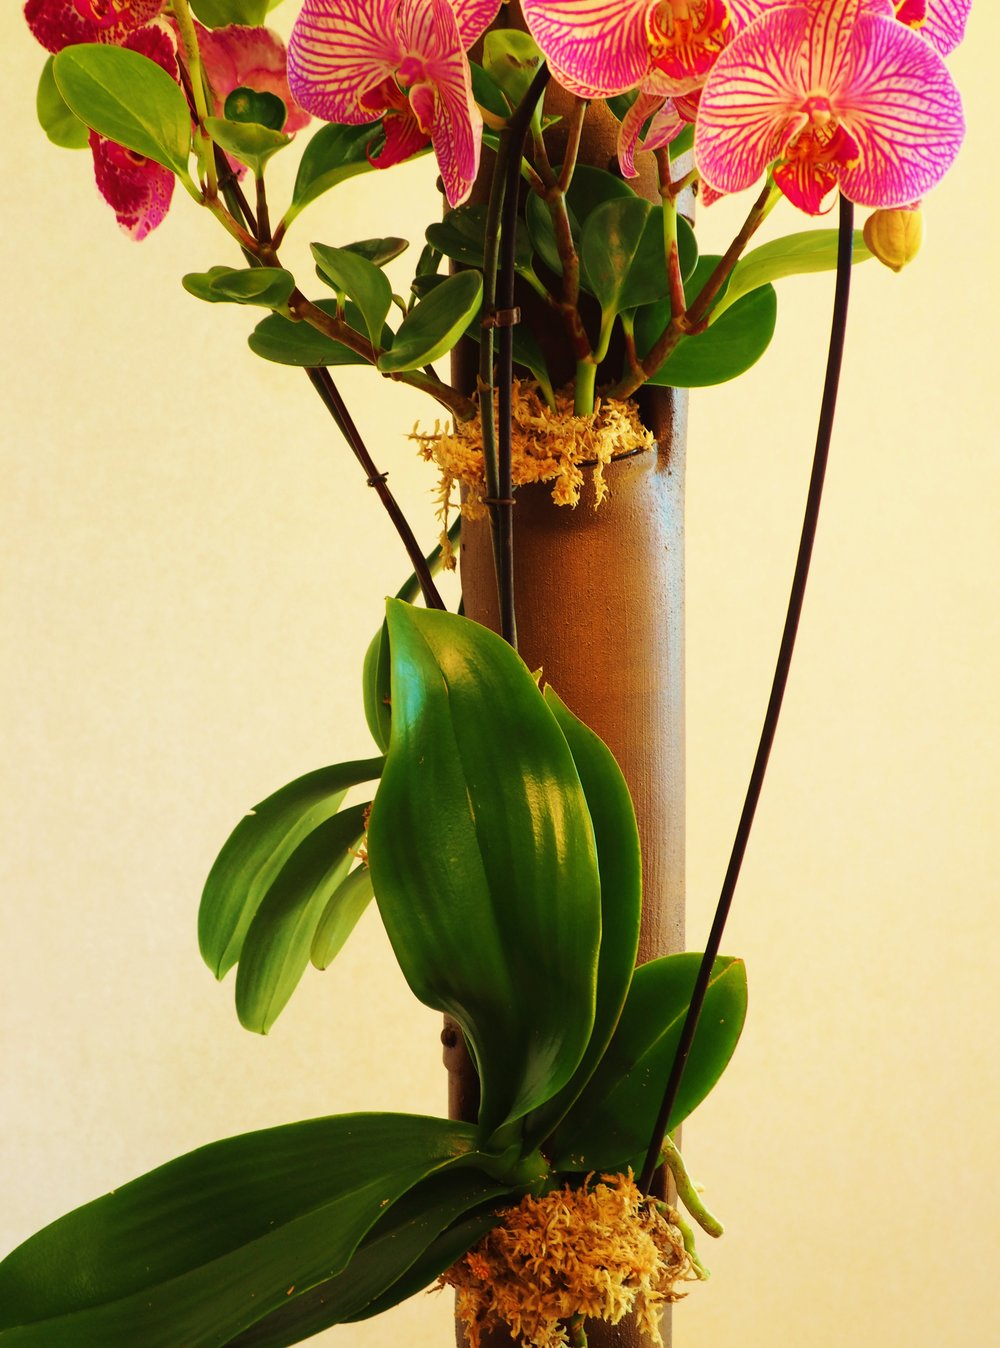 AergrowAntiqueCopperPostwithOrchids.JPG